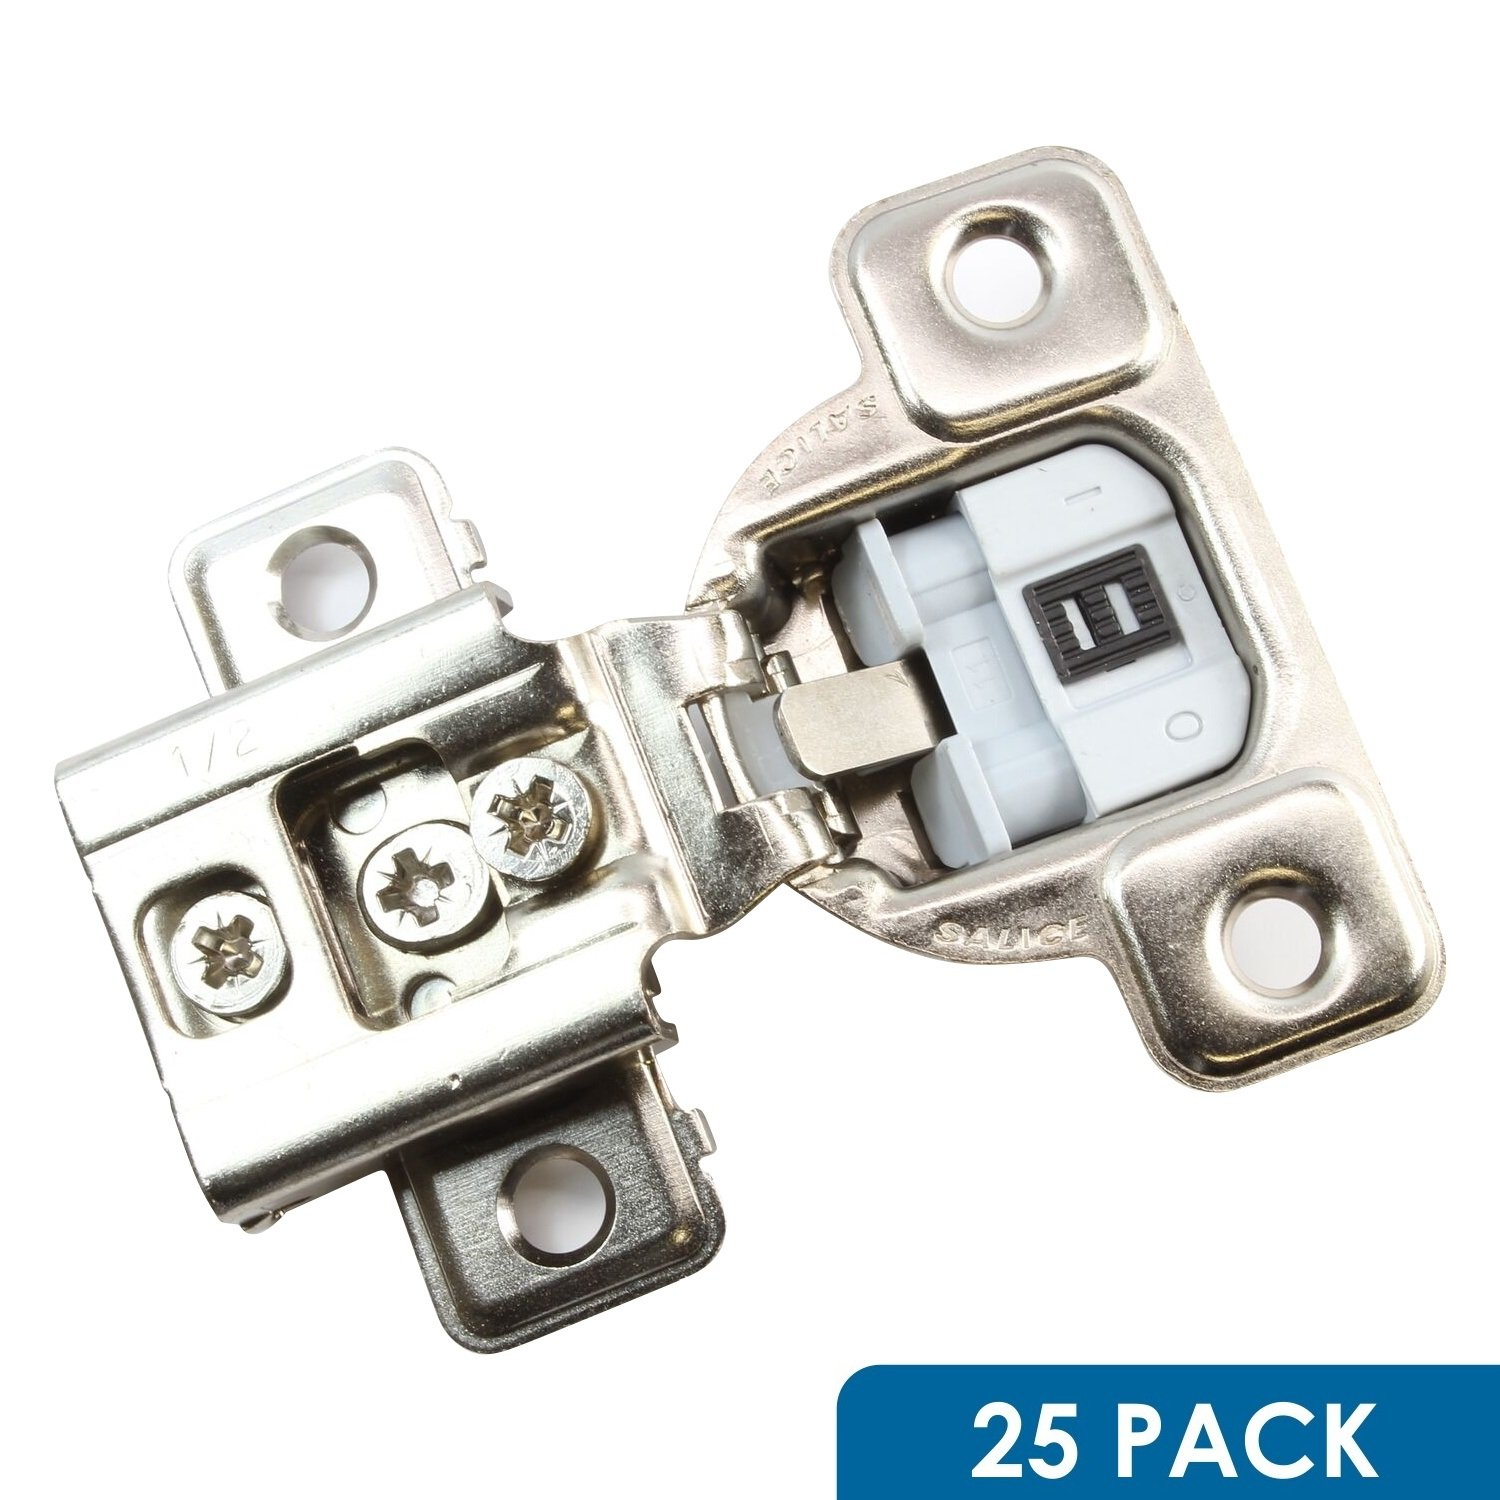 Salice 106 Degree Silentia E-Centhree 1/2'' Overlay Screw On Soft Close Cabinet Hinge with 3 Cam Adjustment CUP37D9R (25 Pack)